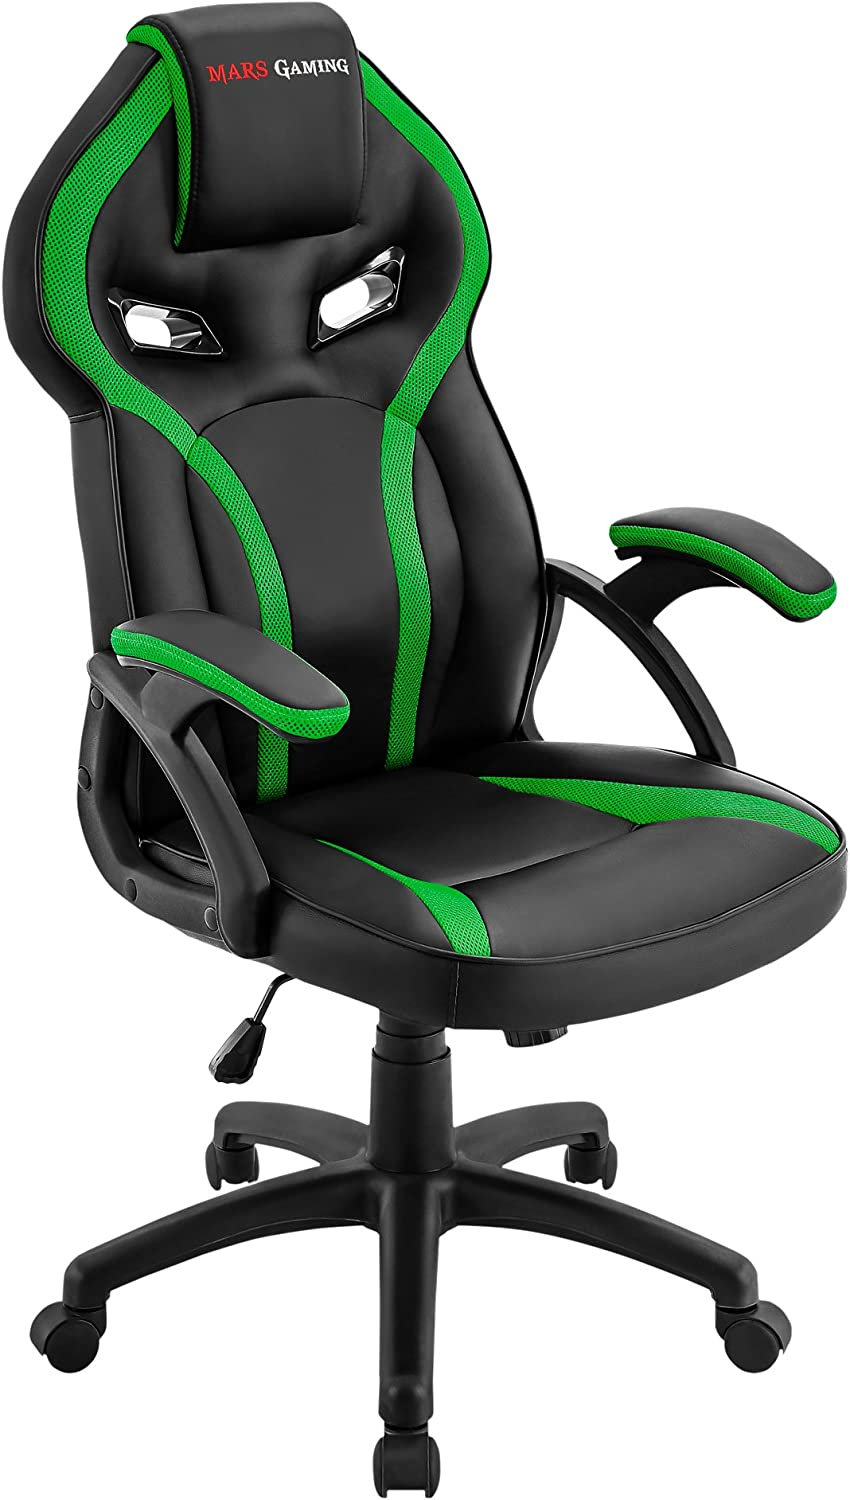 MARSGAMING MGC118 Silla Gaming Ergonómica en PU y Nylon, Regulable, Verde, Large